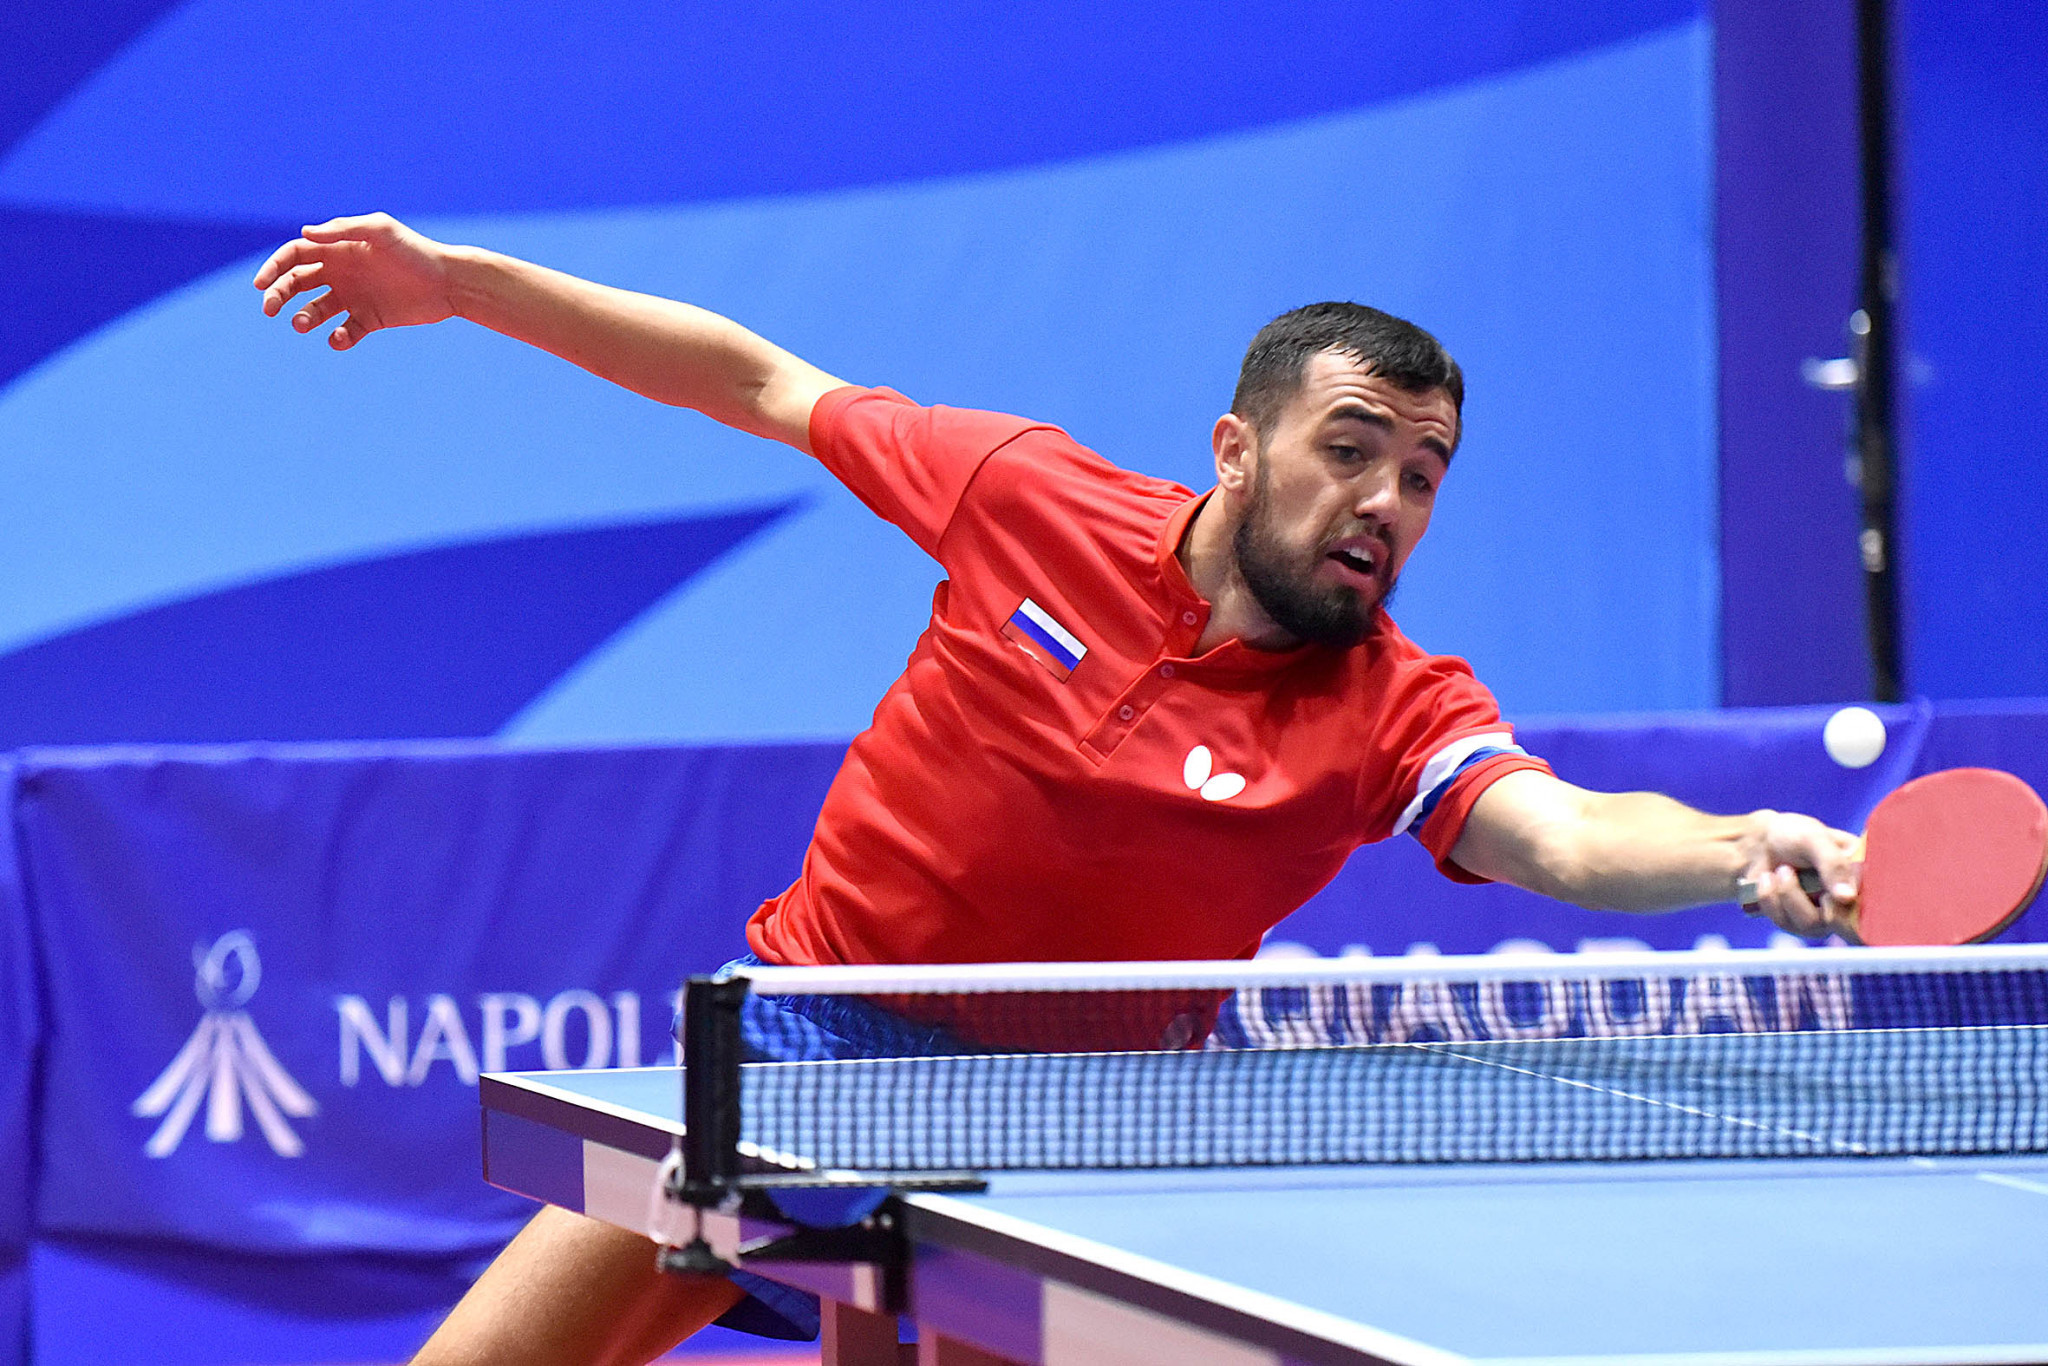 Russia's Said Ismailov was the only non-Chinese athlete to win a medal today, taking bronze in the men's singles ©Naples 2019